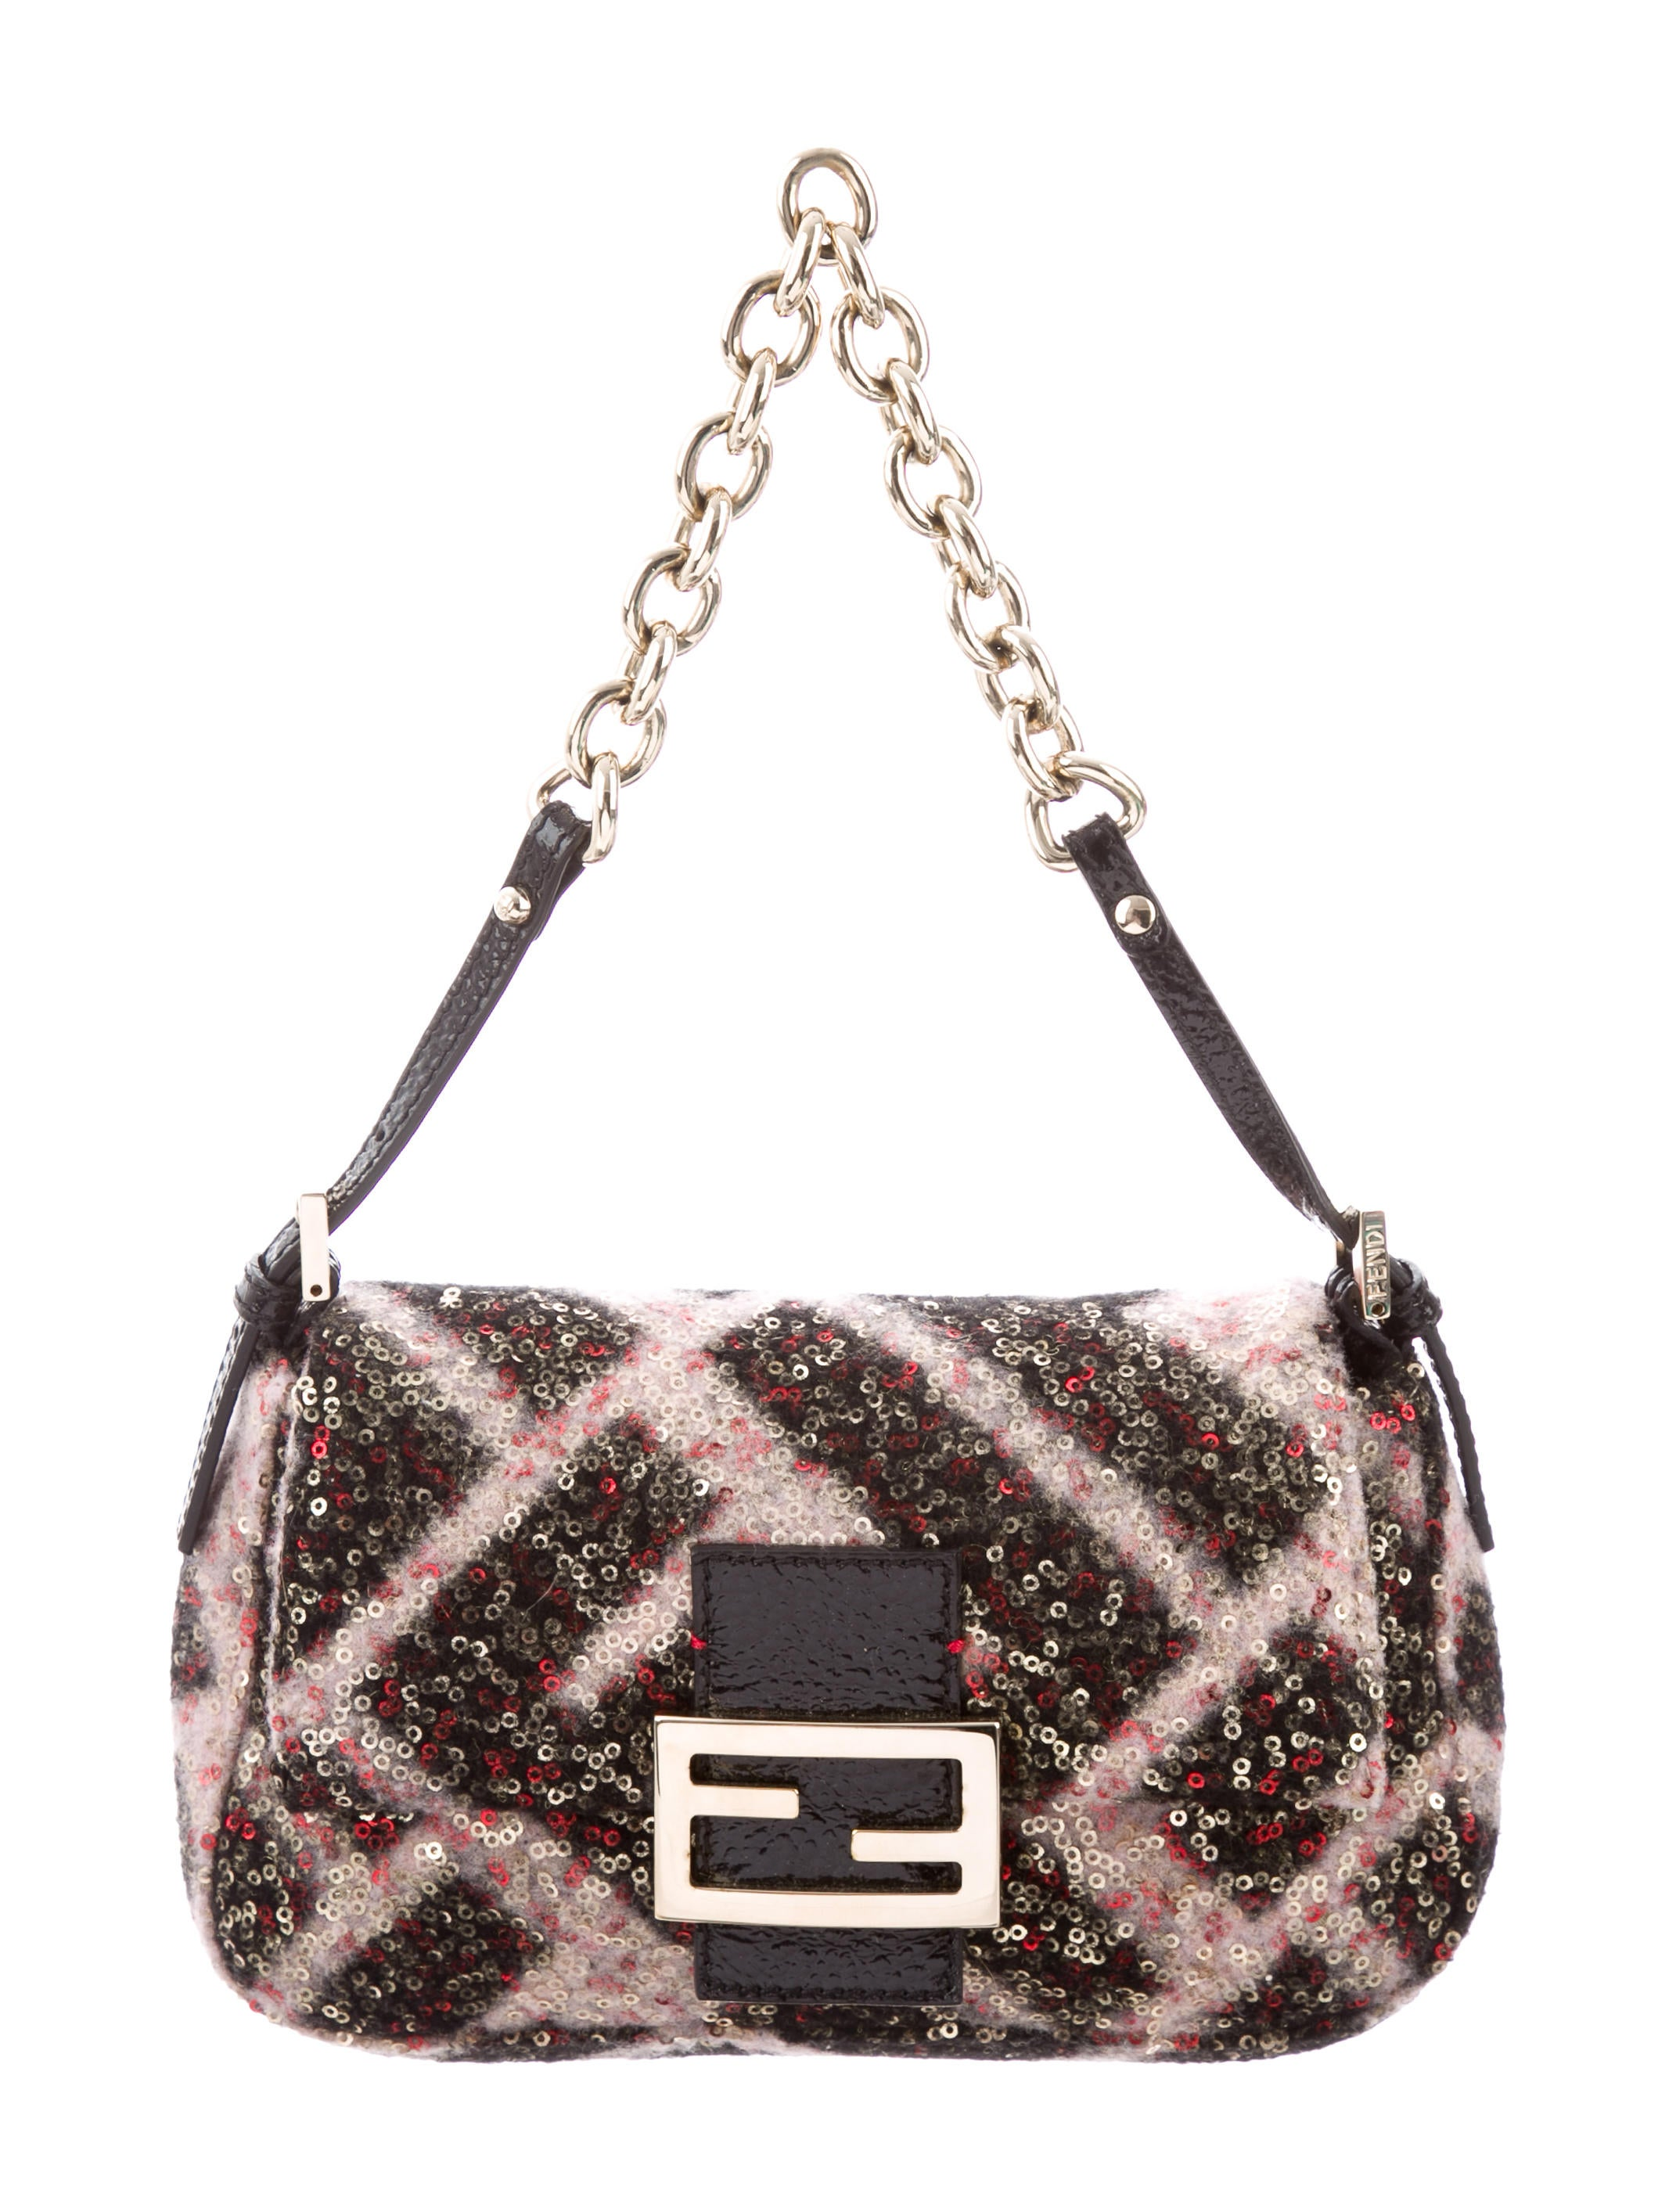 07d76542b406 Fendi Mini Sequin Mama Forever Bag - Handbags - FEN83672